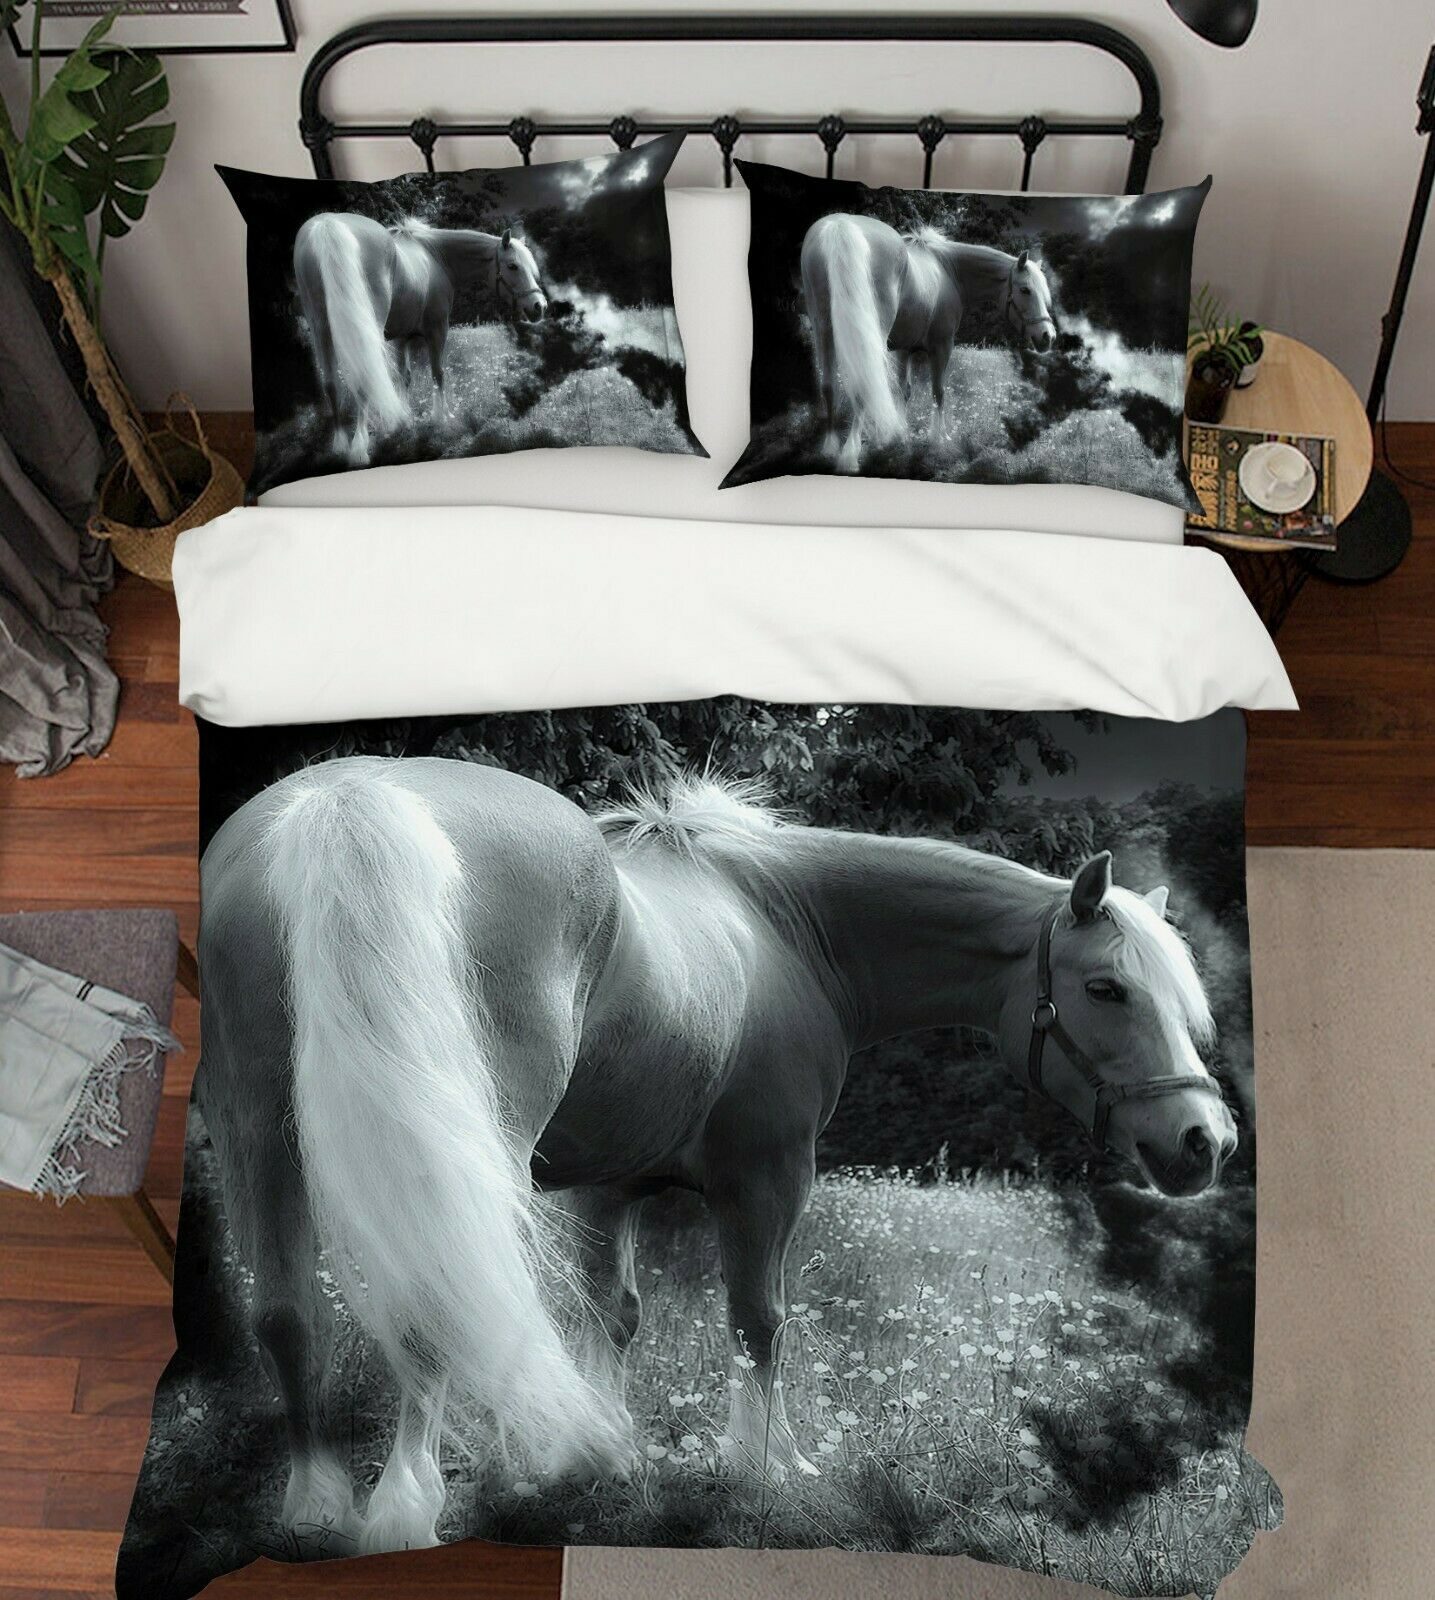 3D horse Habitat G56 Animal Bed Pillowcases Quilt Duvet Cover Set Queen King We